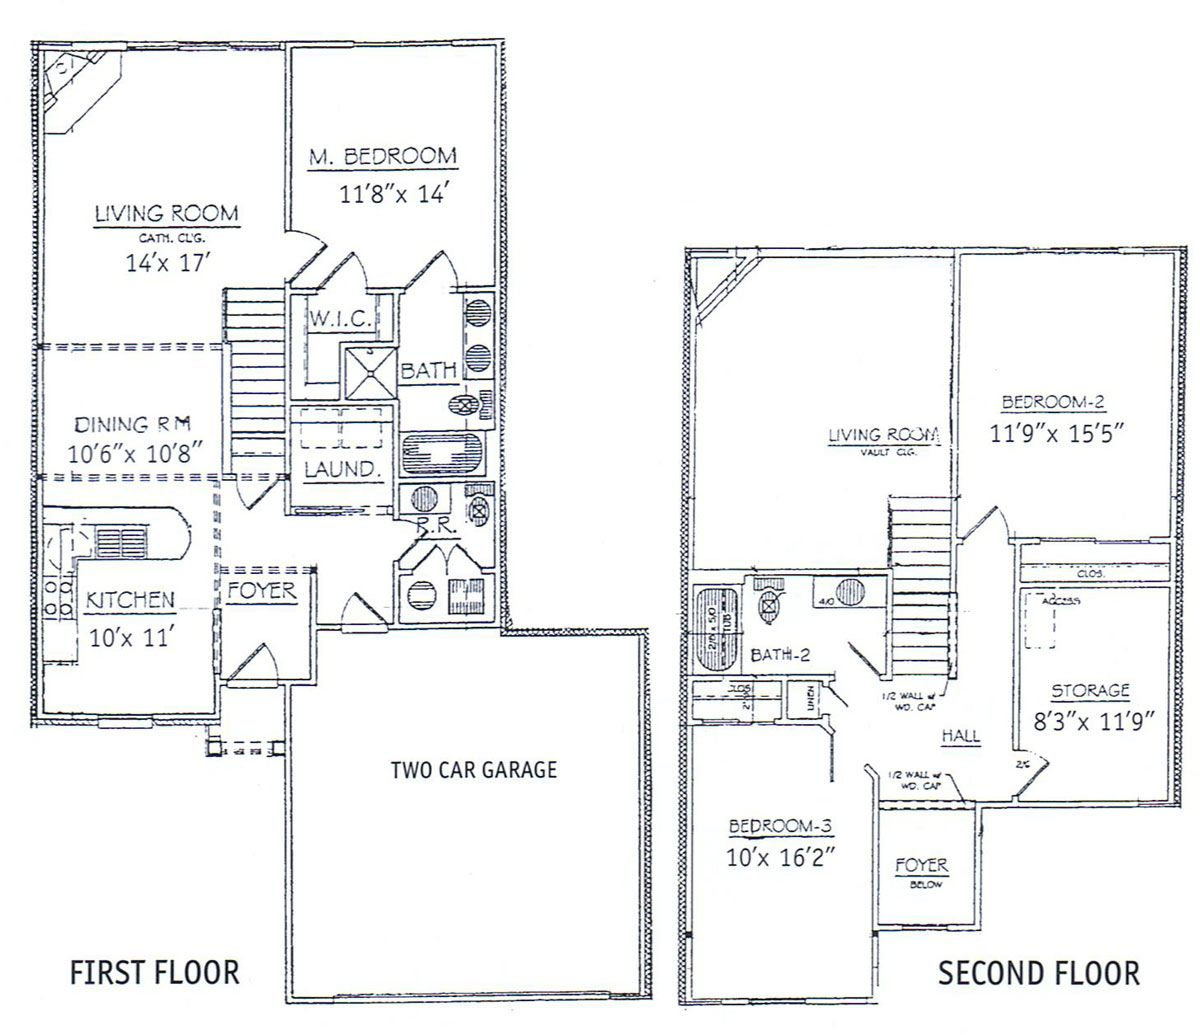 3 bedrooms floor plans 2 story bdrm basement the two for 3 bedroom house plans with basement